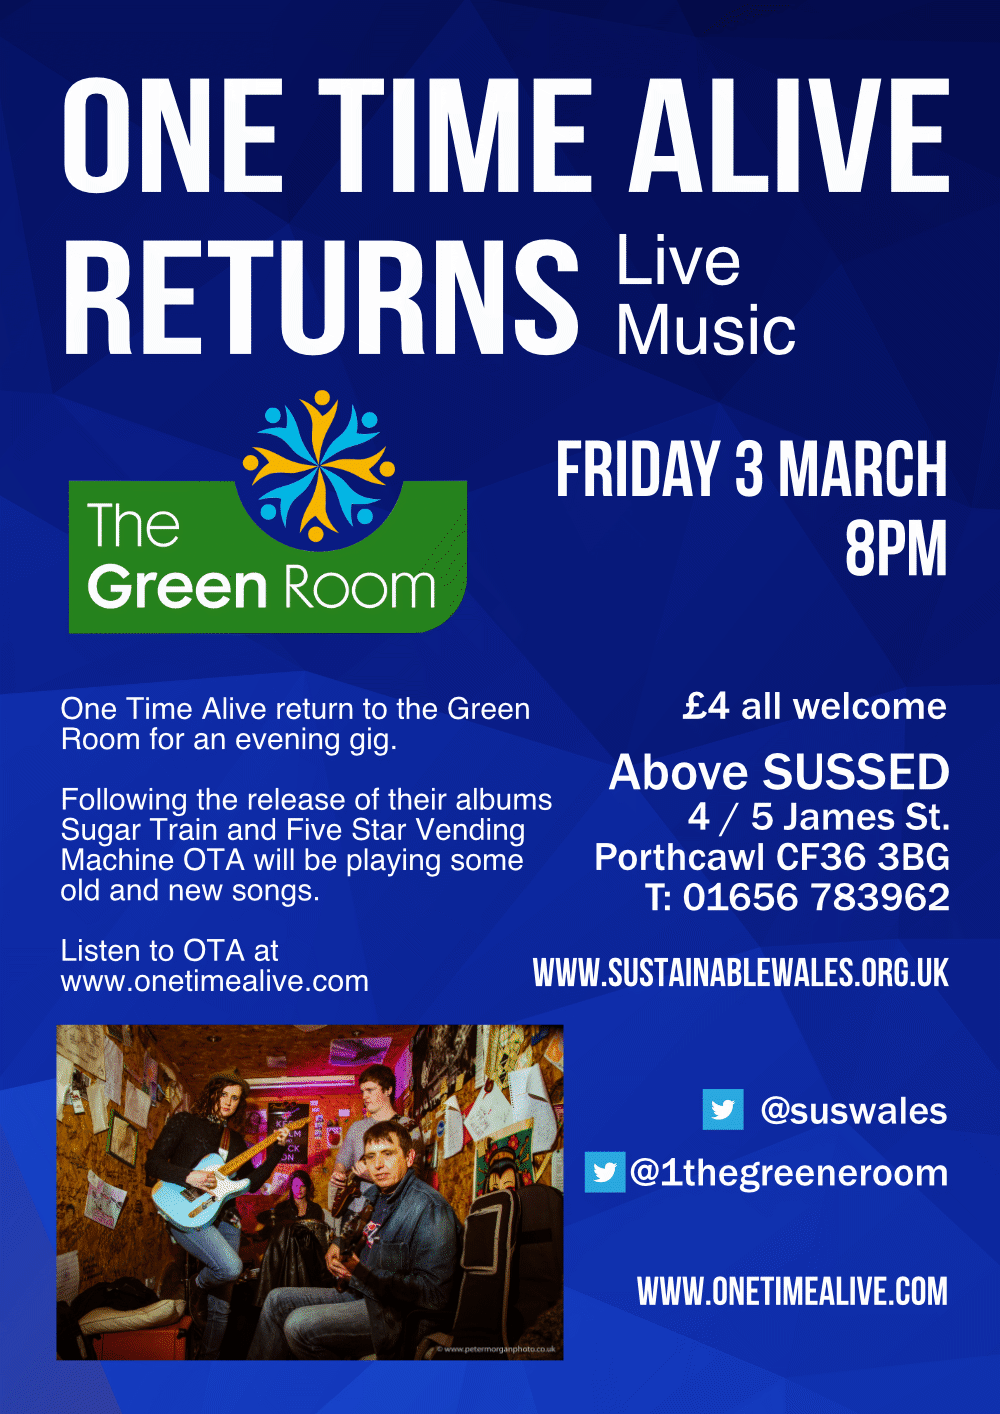 Live music at the Green Room